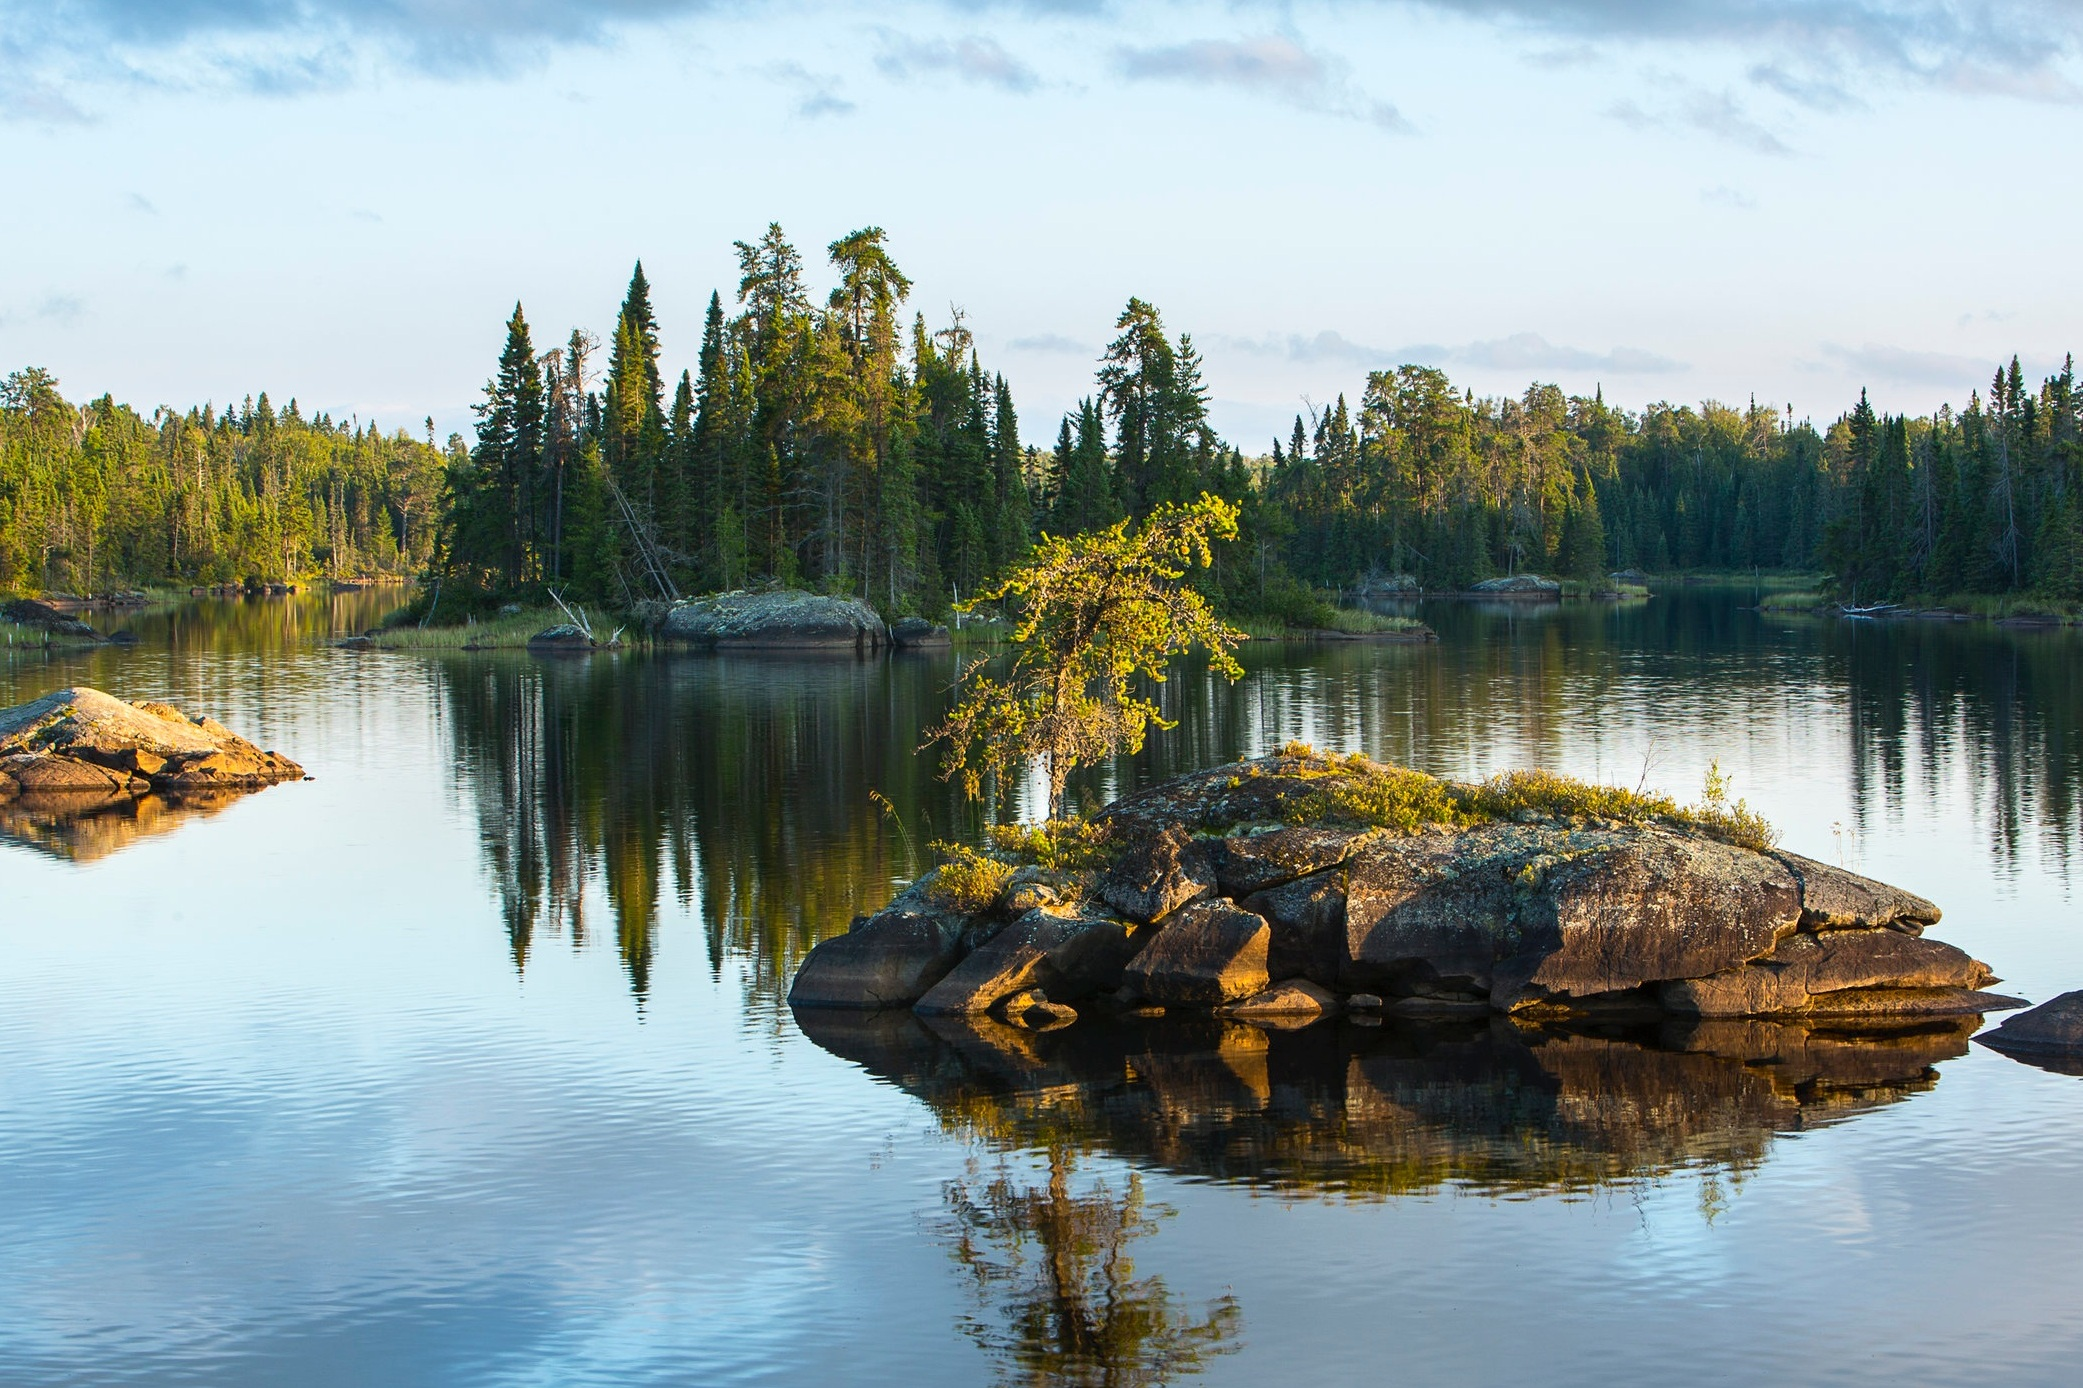 QUETICo provincial Park - The Boundary Waters is not the only opportunity for adventure in the region. With fewer visitors and minimally maintained portages, many travelers venture into Canada's Quetico Provincial Park in search of an even more remote adventure. Learn more about planning a trip to the Quetico.Photo courtesy of Benjamin Olson